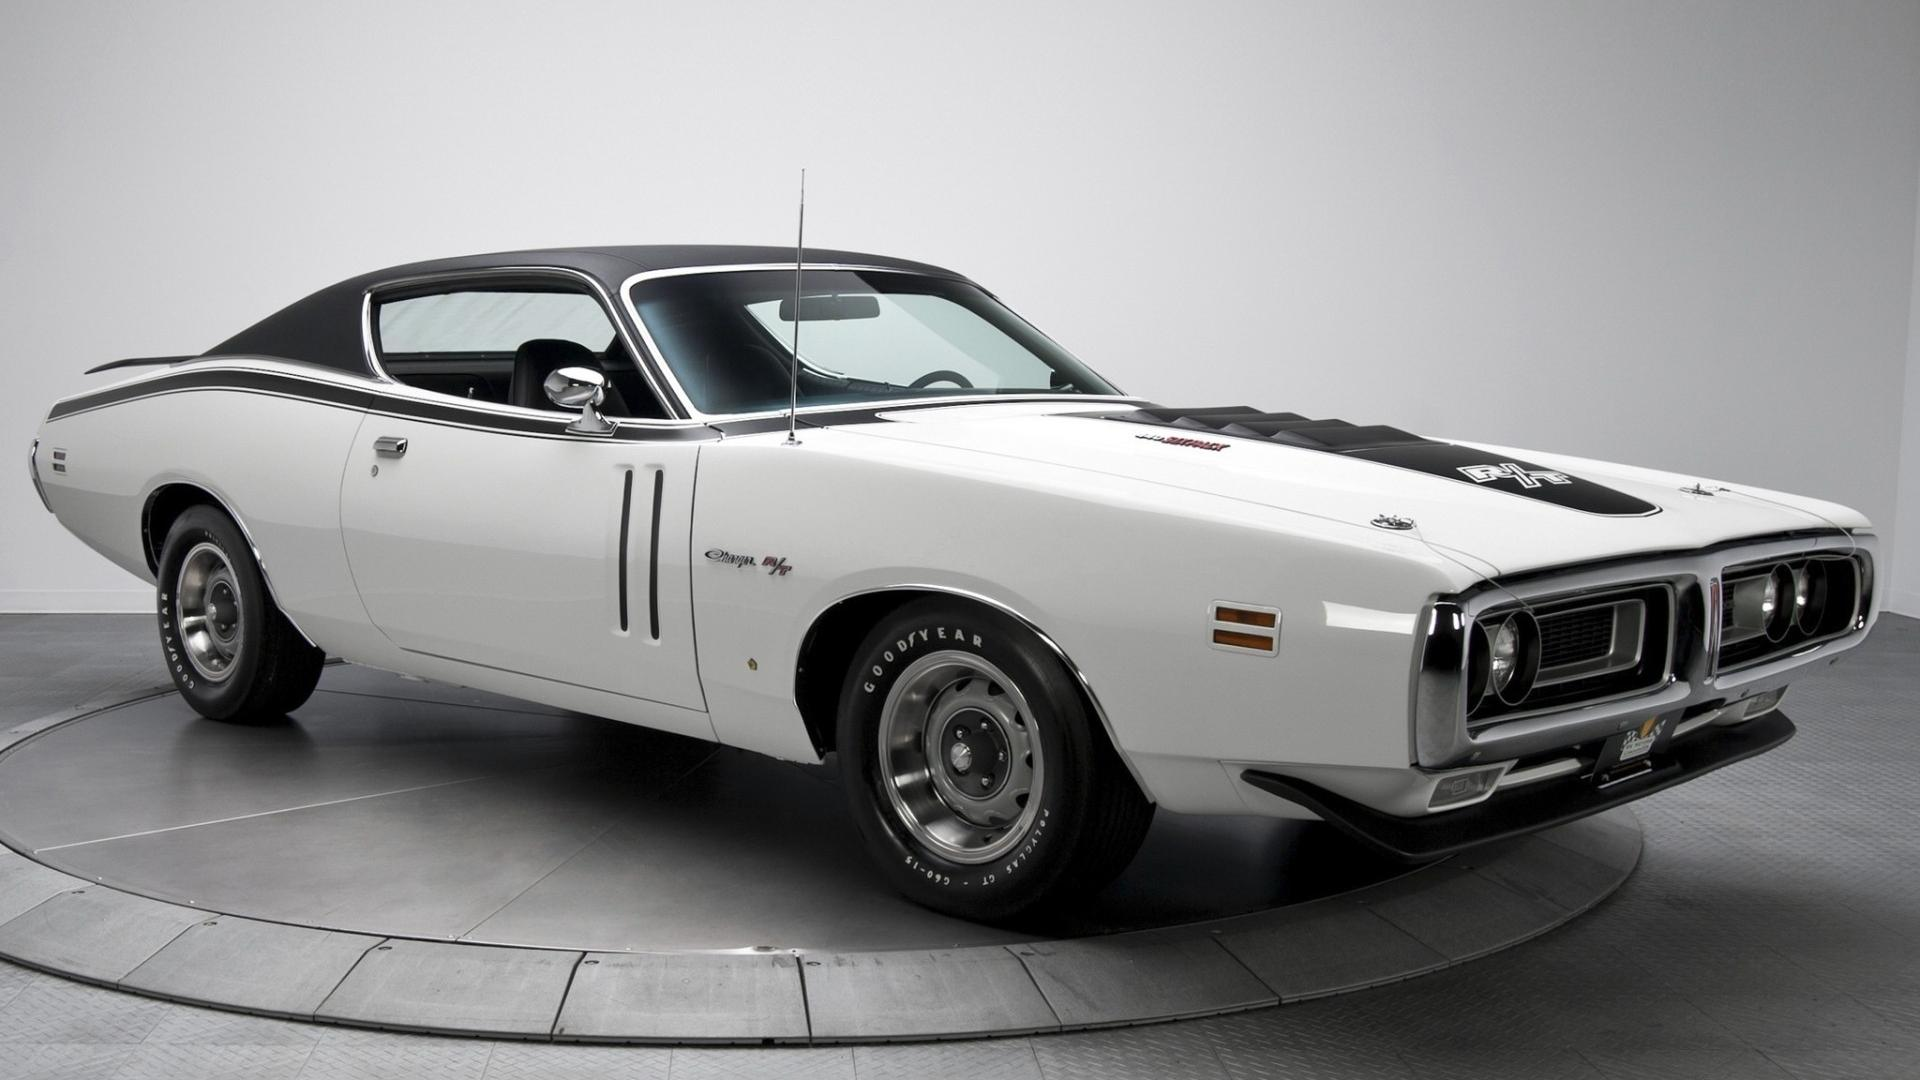 Dodge charger 1970 muscle car six wallpaper 63740 1920x1080